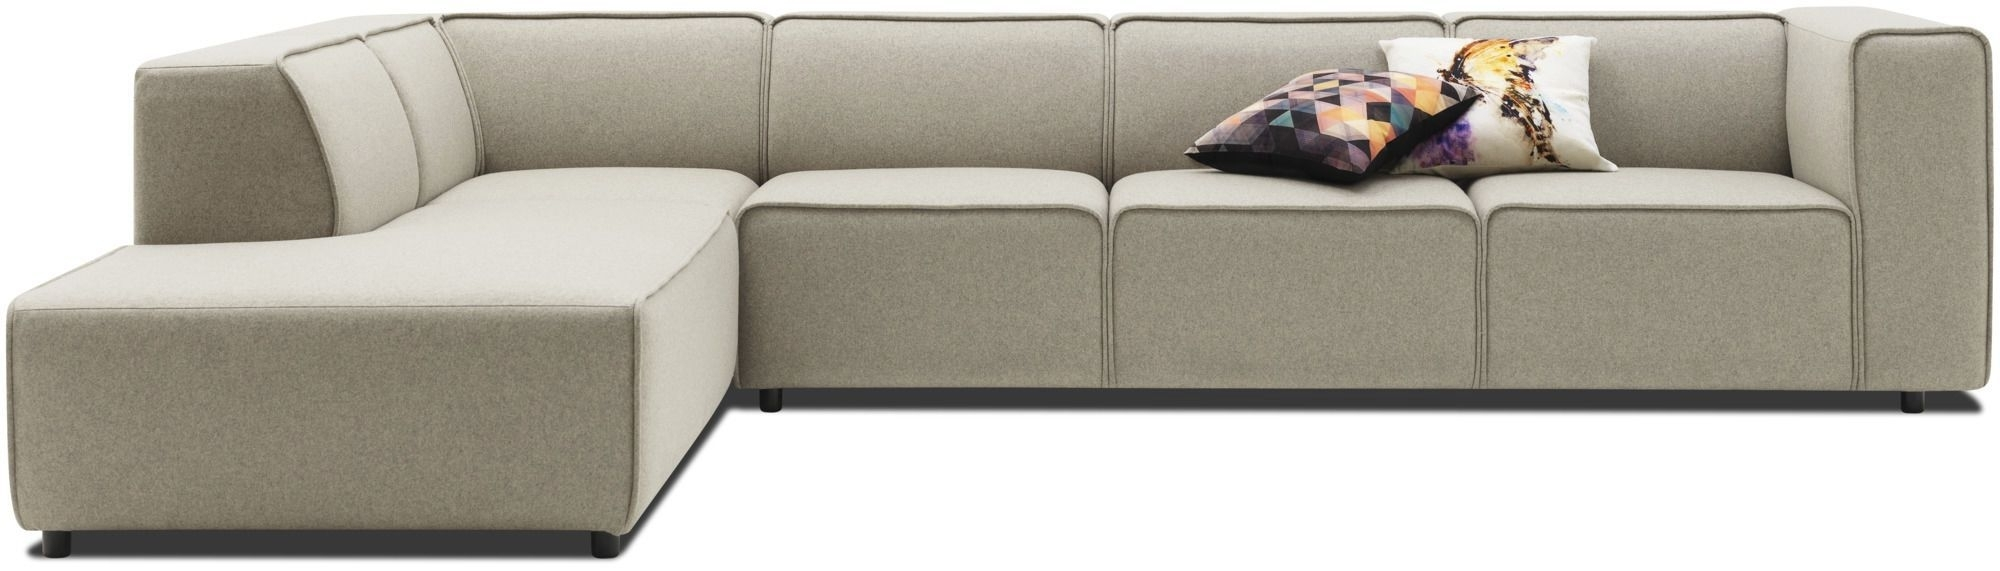 Trendy Corner Sofa / Modular / Contemporary / Leather – Carmoanders With Modular Corner Sofas (View 19 of 20)